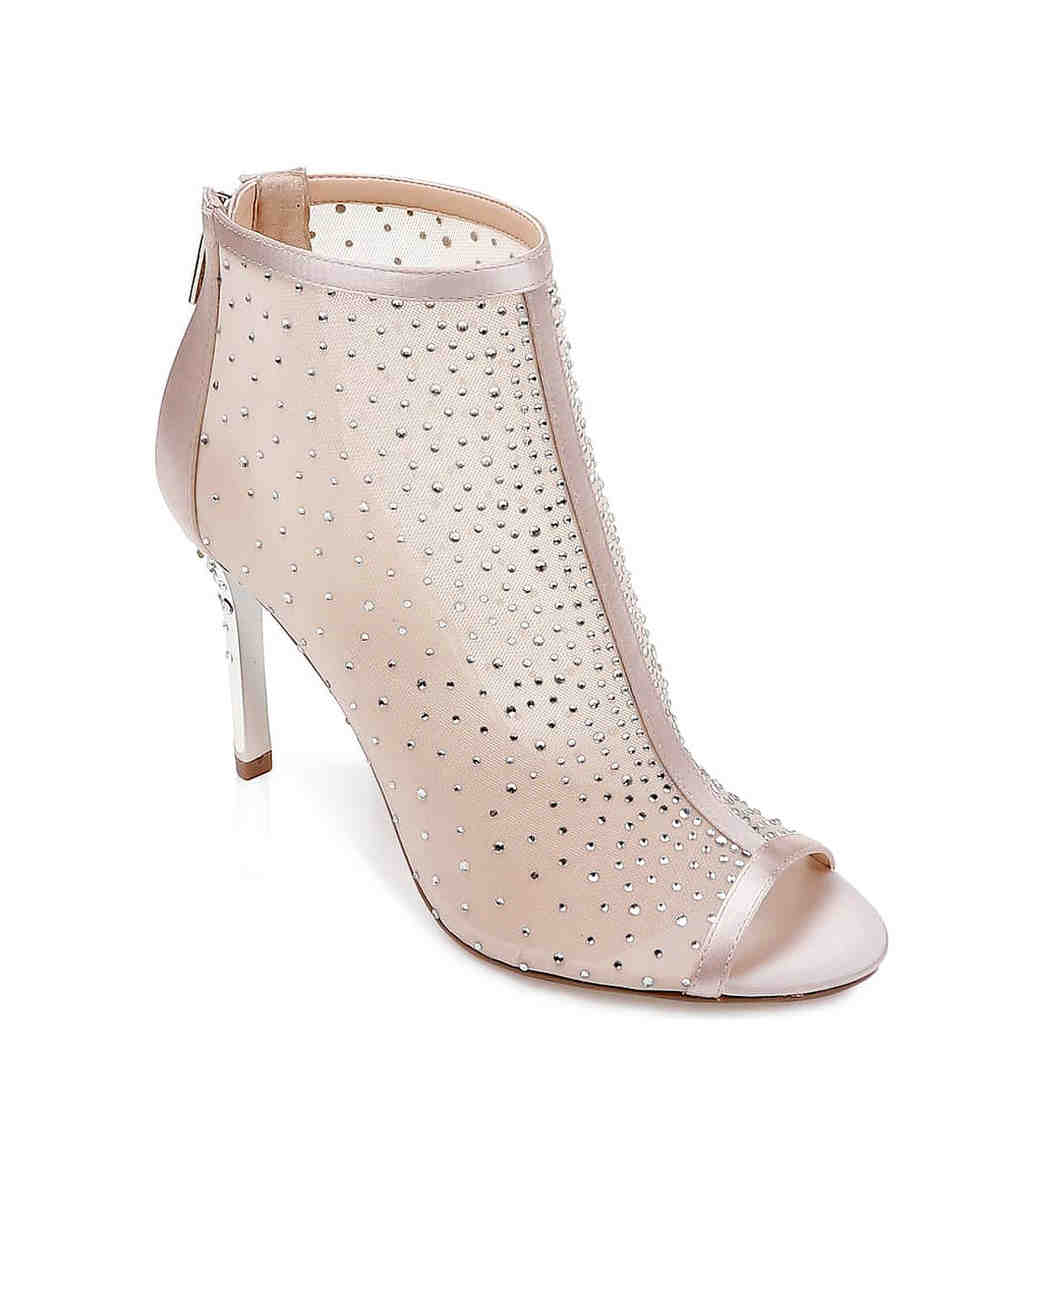 5bb6d44713 The Best Bridal Boots and Booties for Your Wedding Day